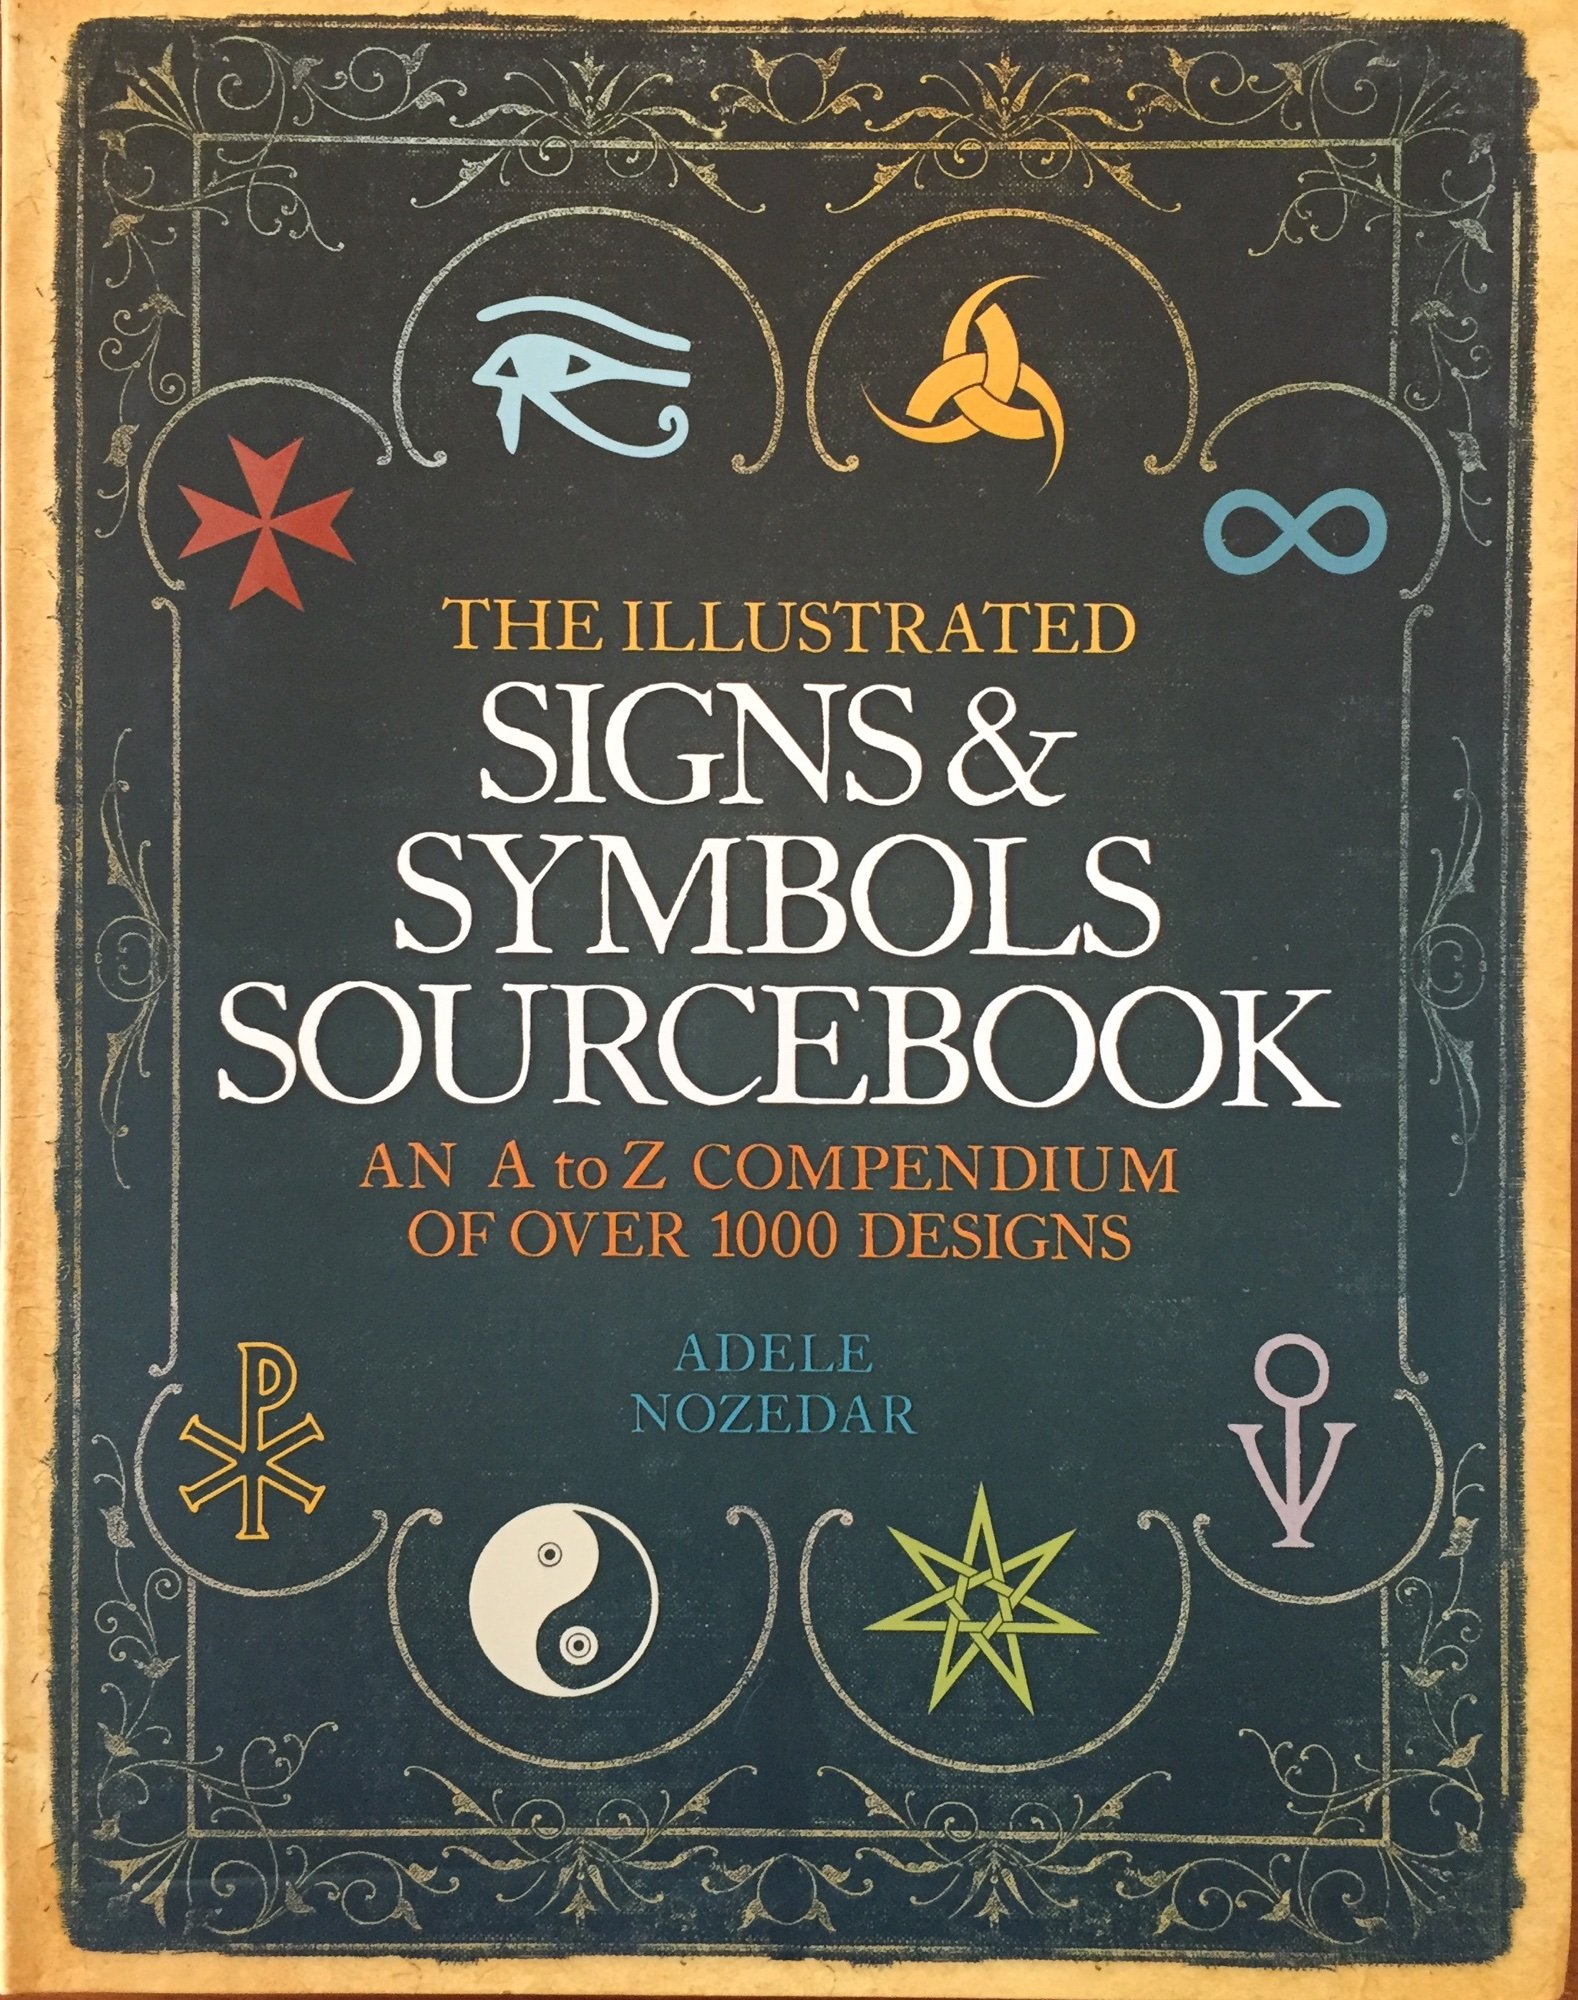 The Illustrated Signs Symbols Sourcebook Adele Nozedar